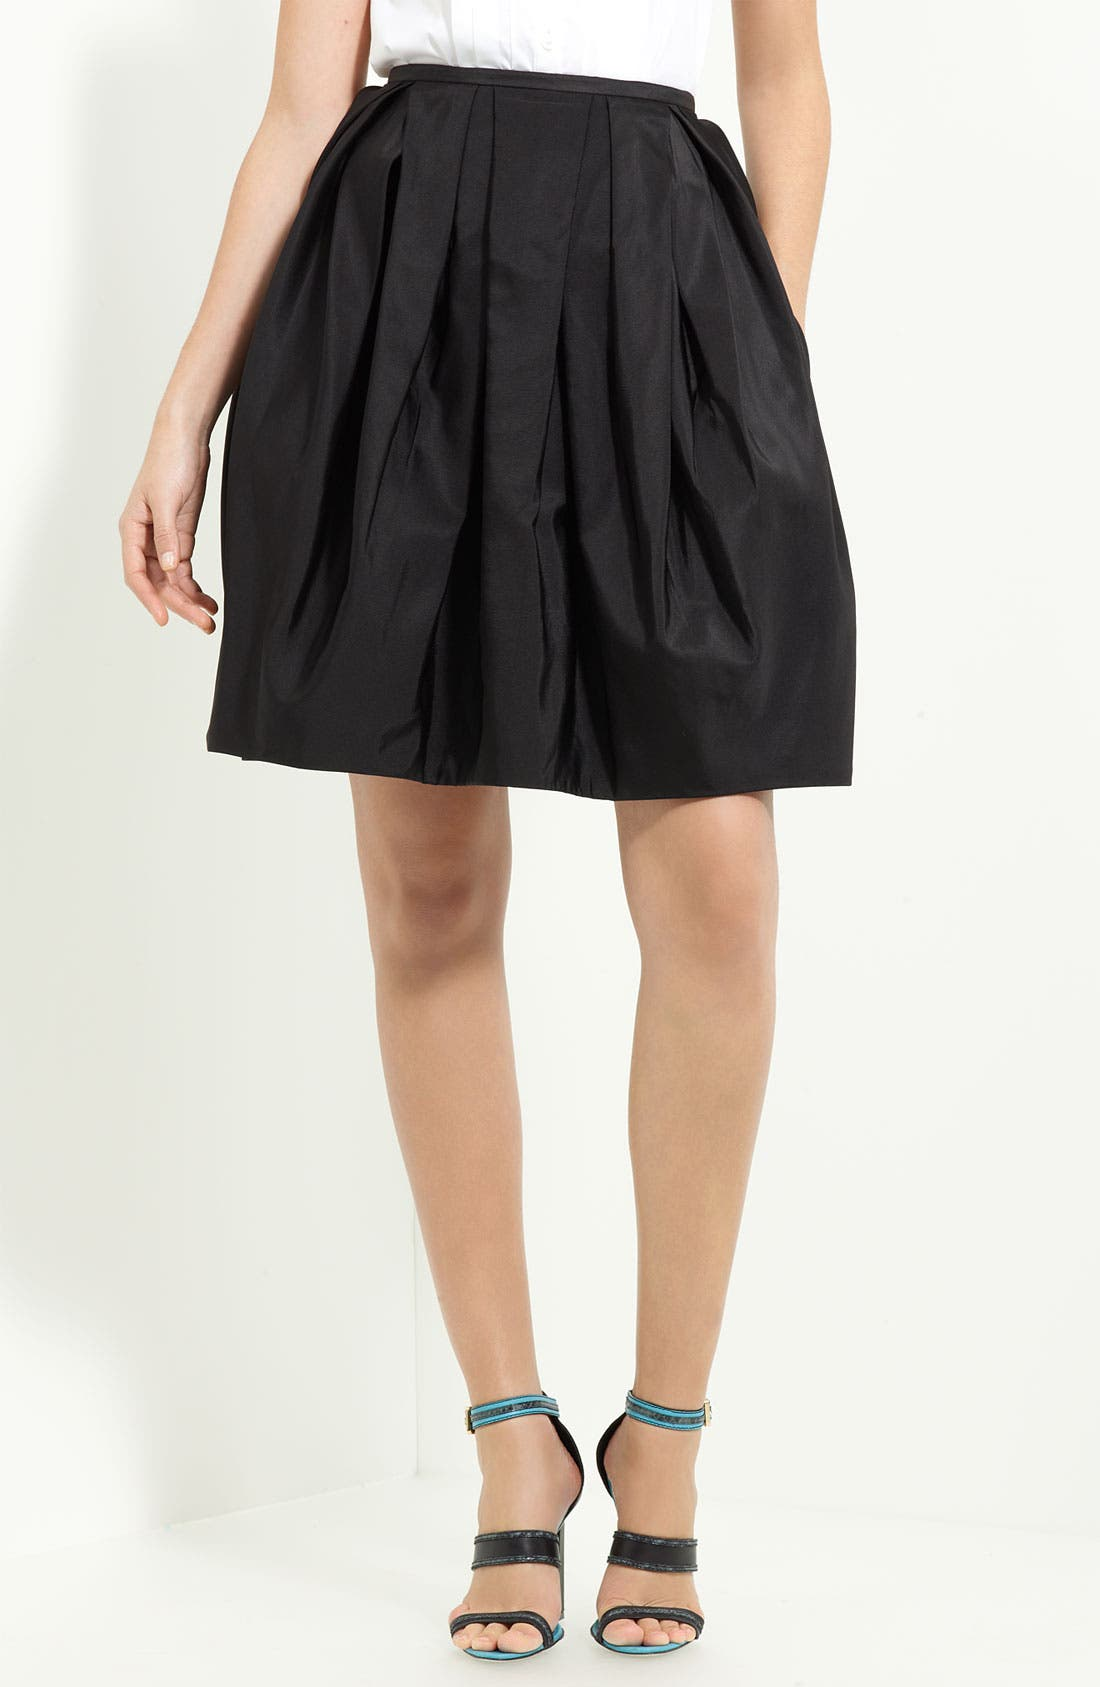 Alternate Image 1 Selected - Jason Wu Sculpted Techno Satin Skirt